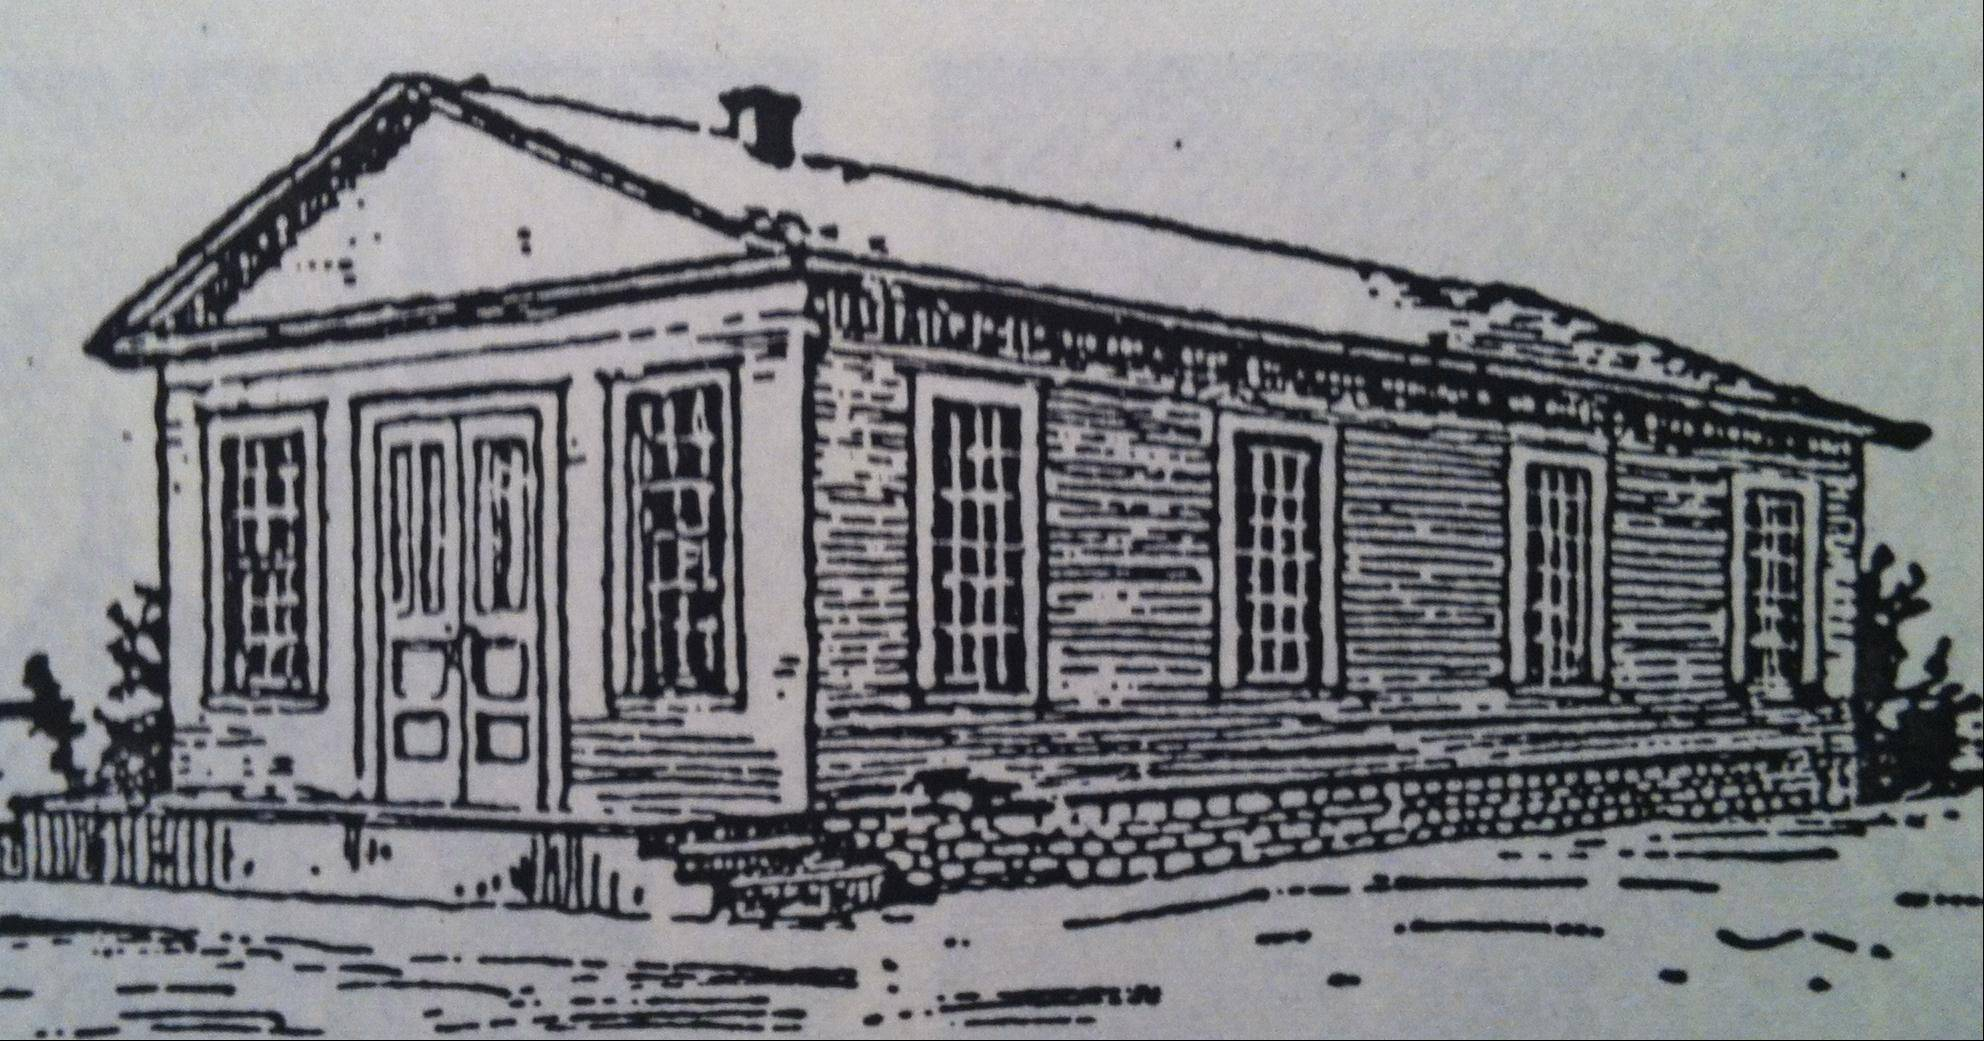 This small church, built in the late 1830s on the same site as the current First United Methodist building, served as the congregation's first permanent home.